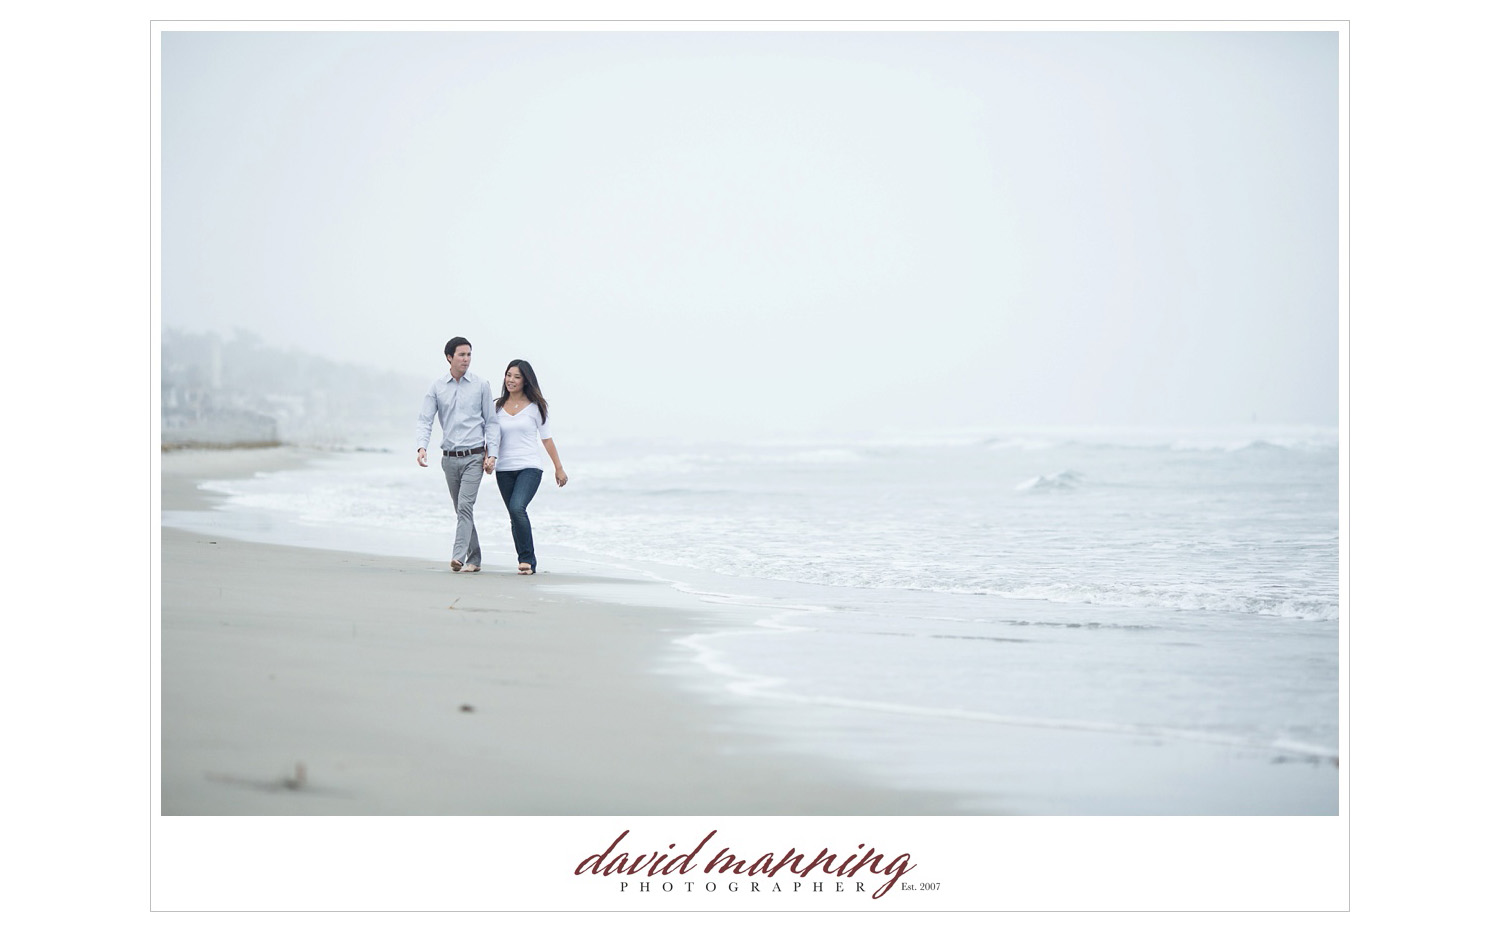 Del-Mar-Ramona-Julian-Engagement-Photos-David-Manning-Photographers-0002.jpg